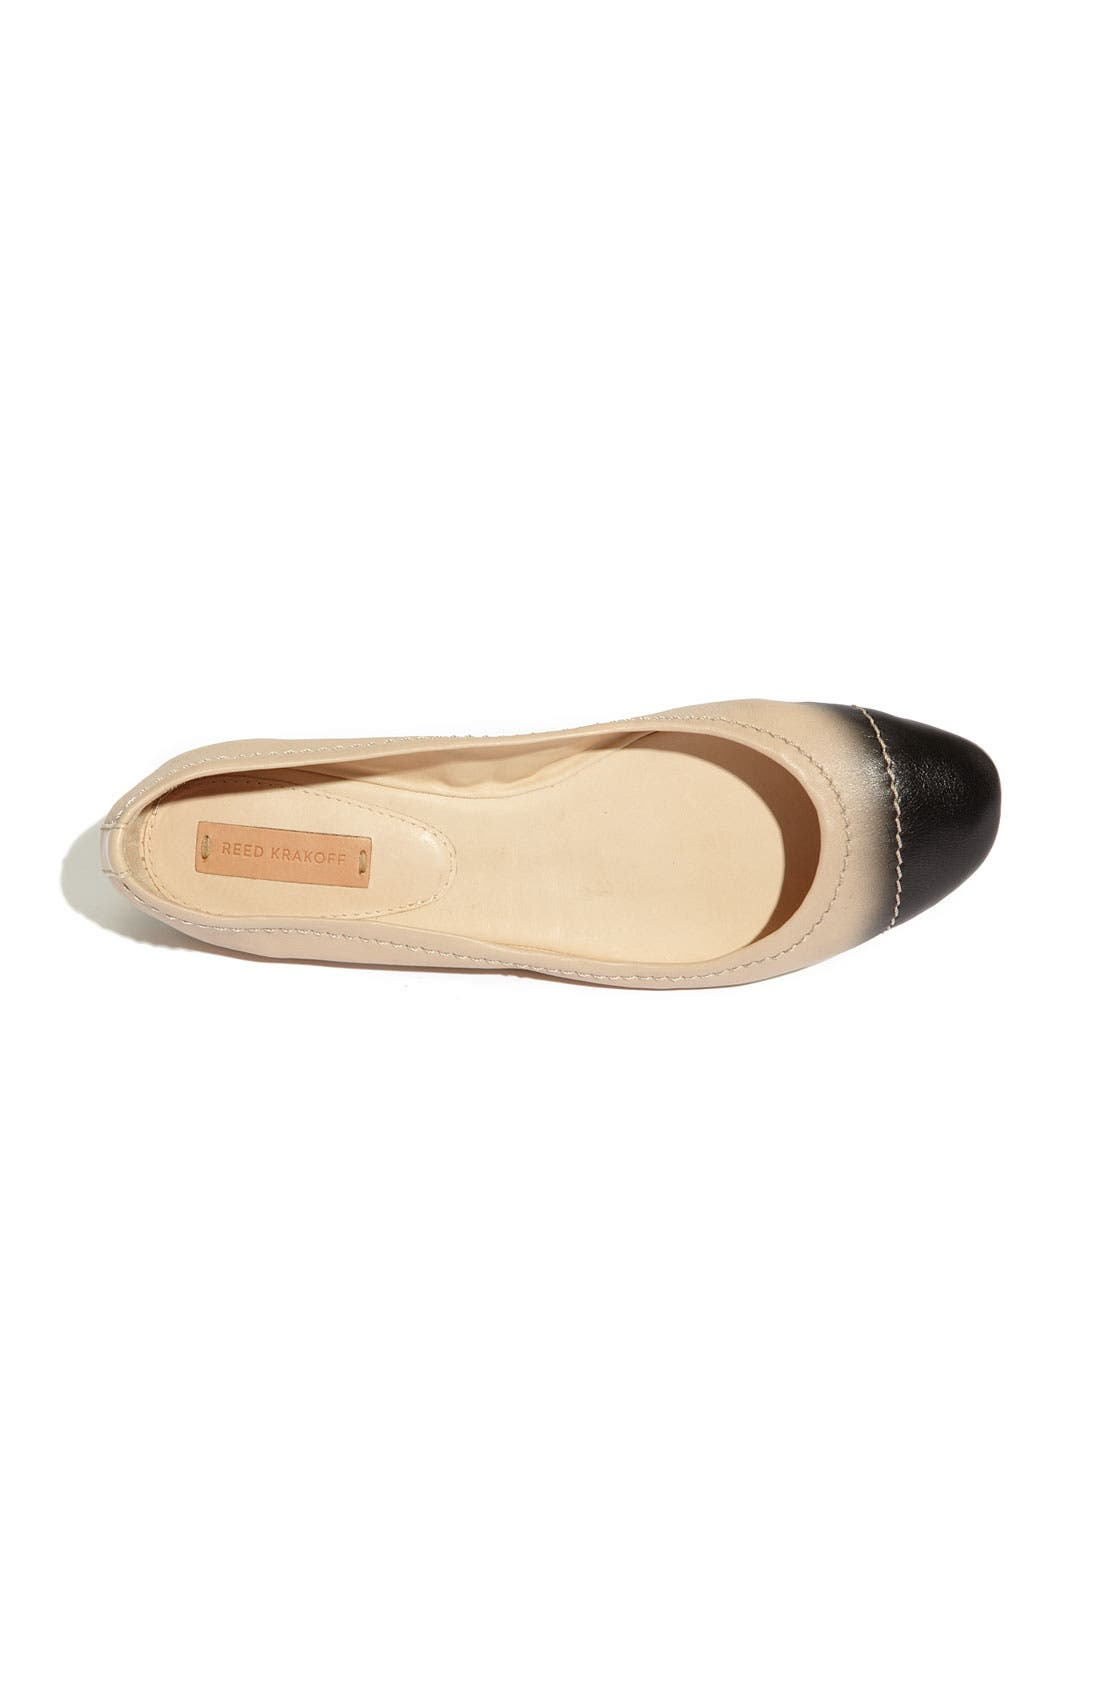 Alternate Image 3  - Reed Krakoff Ballet Flat